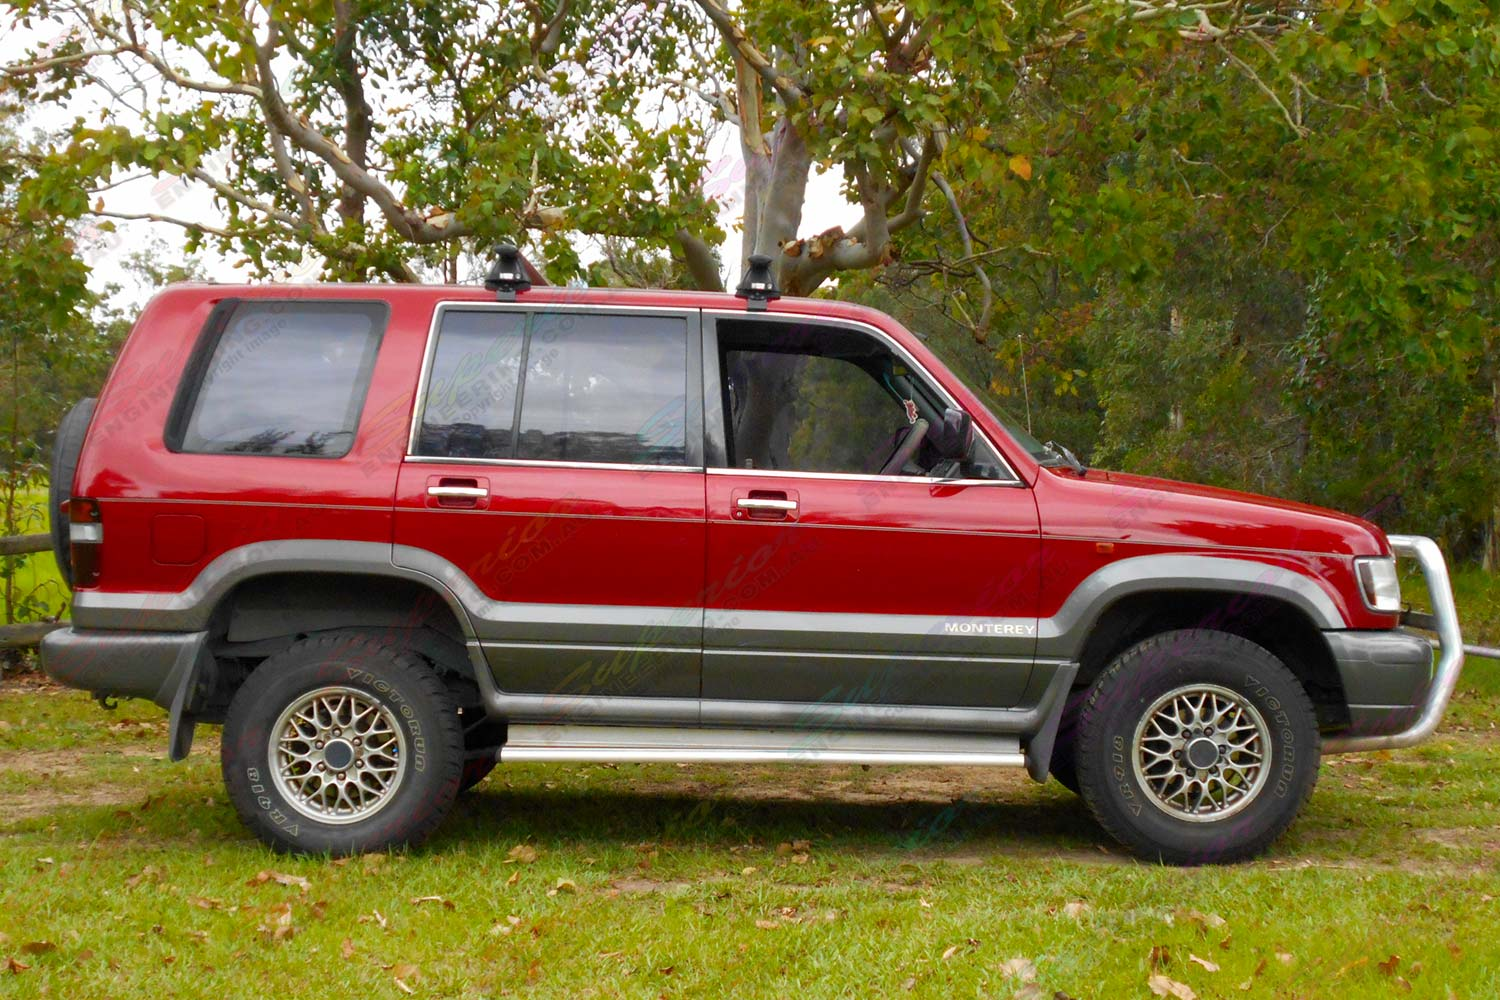 Right side view of a red Holden Jackaroo wagon fitted with a 40mm Ironman 4x4 Performance lift kit